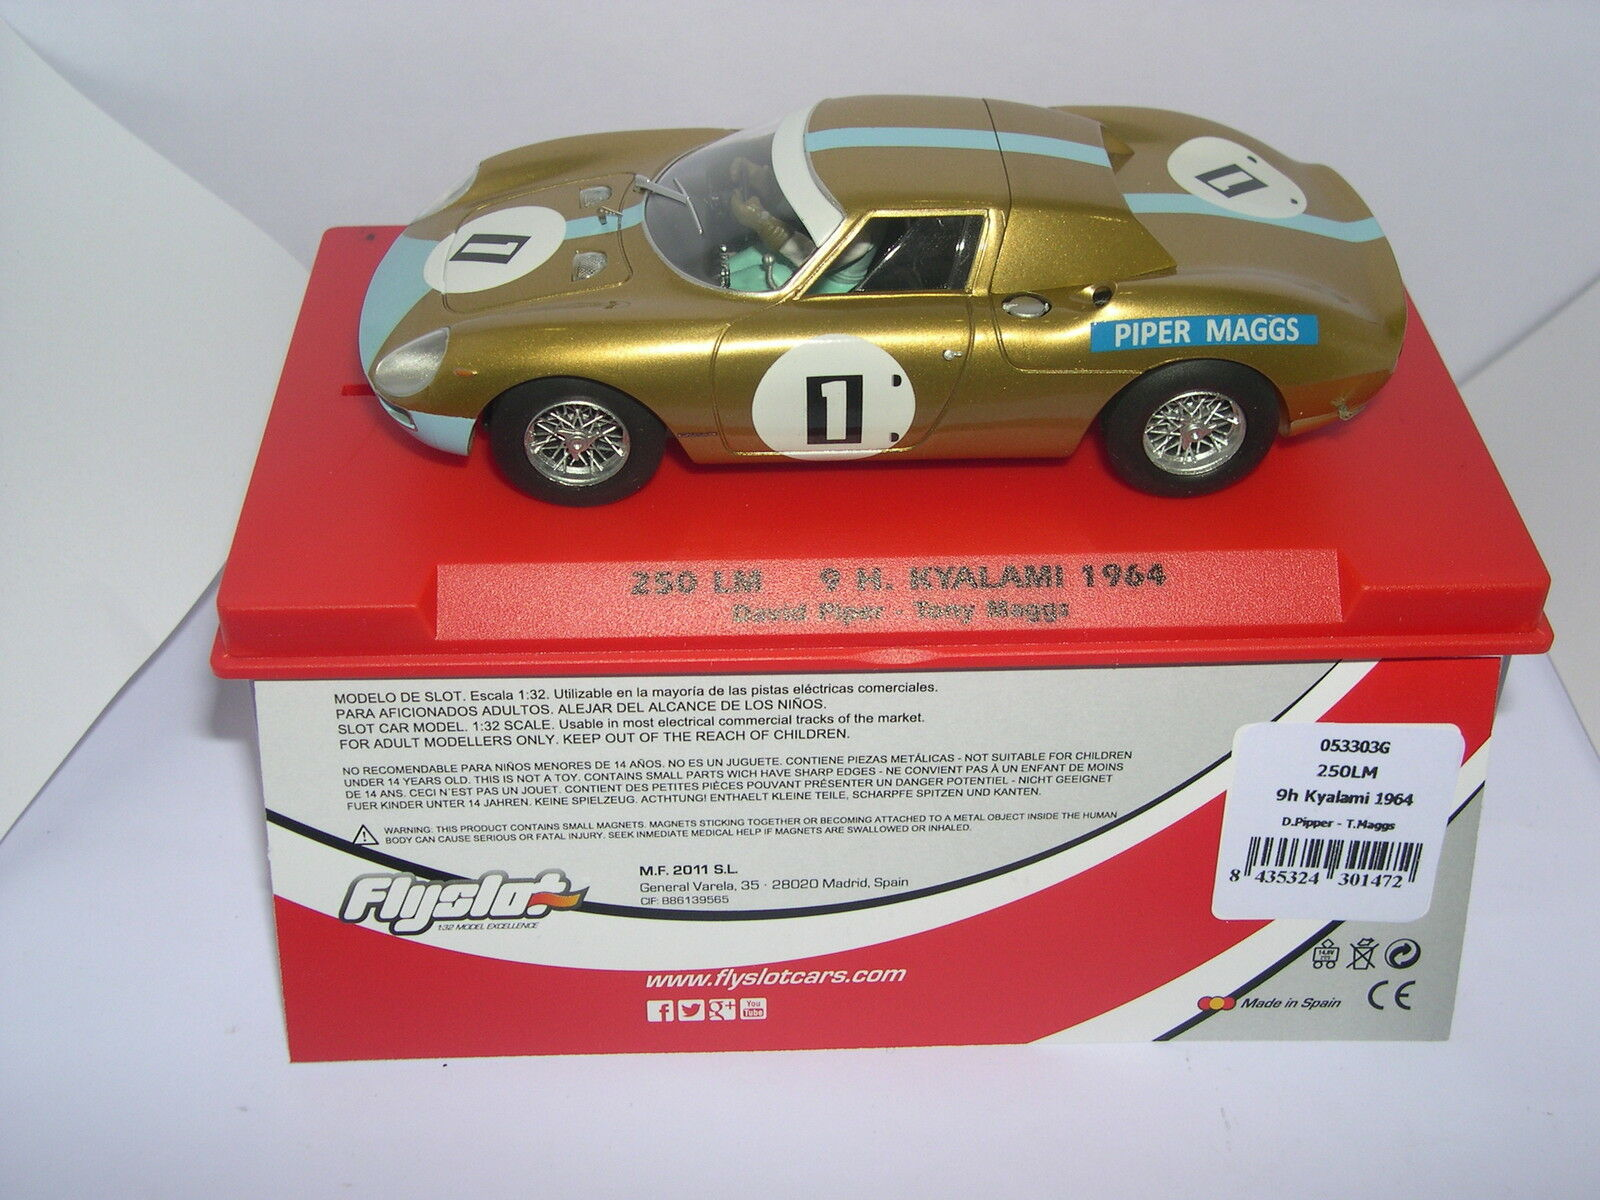 FLY FLYSLOT 1880.2oz SLOT CAR FERRARI 250LM  1 KYALAMI 1964 20UNITS LTED